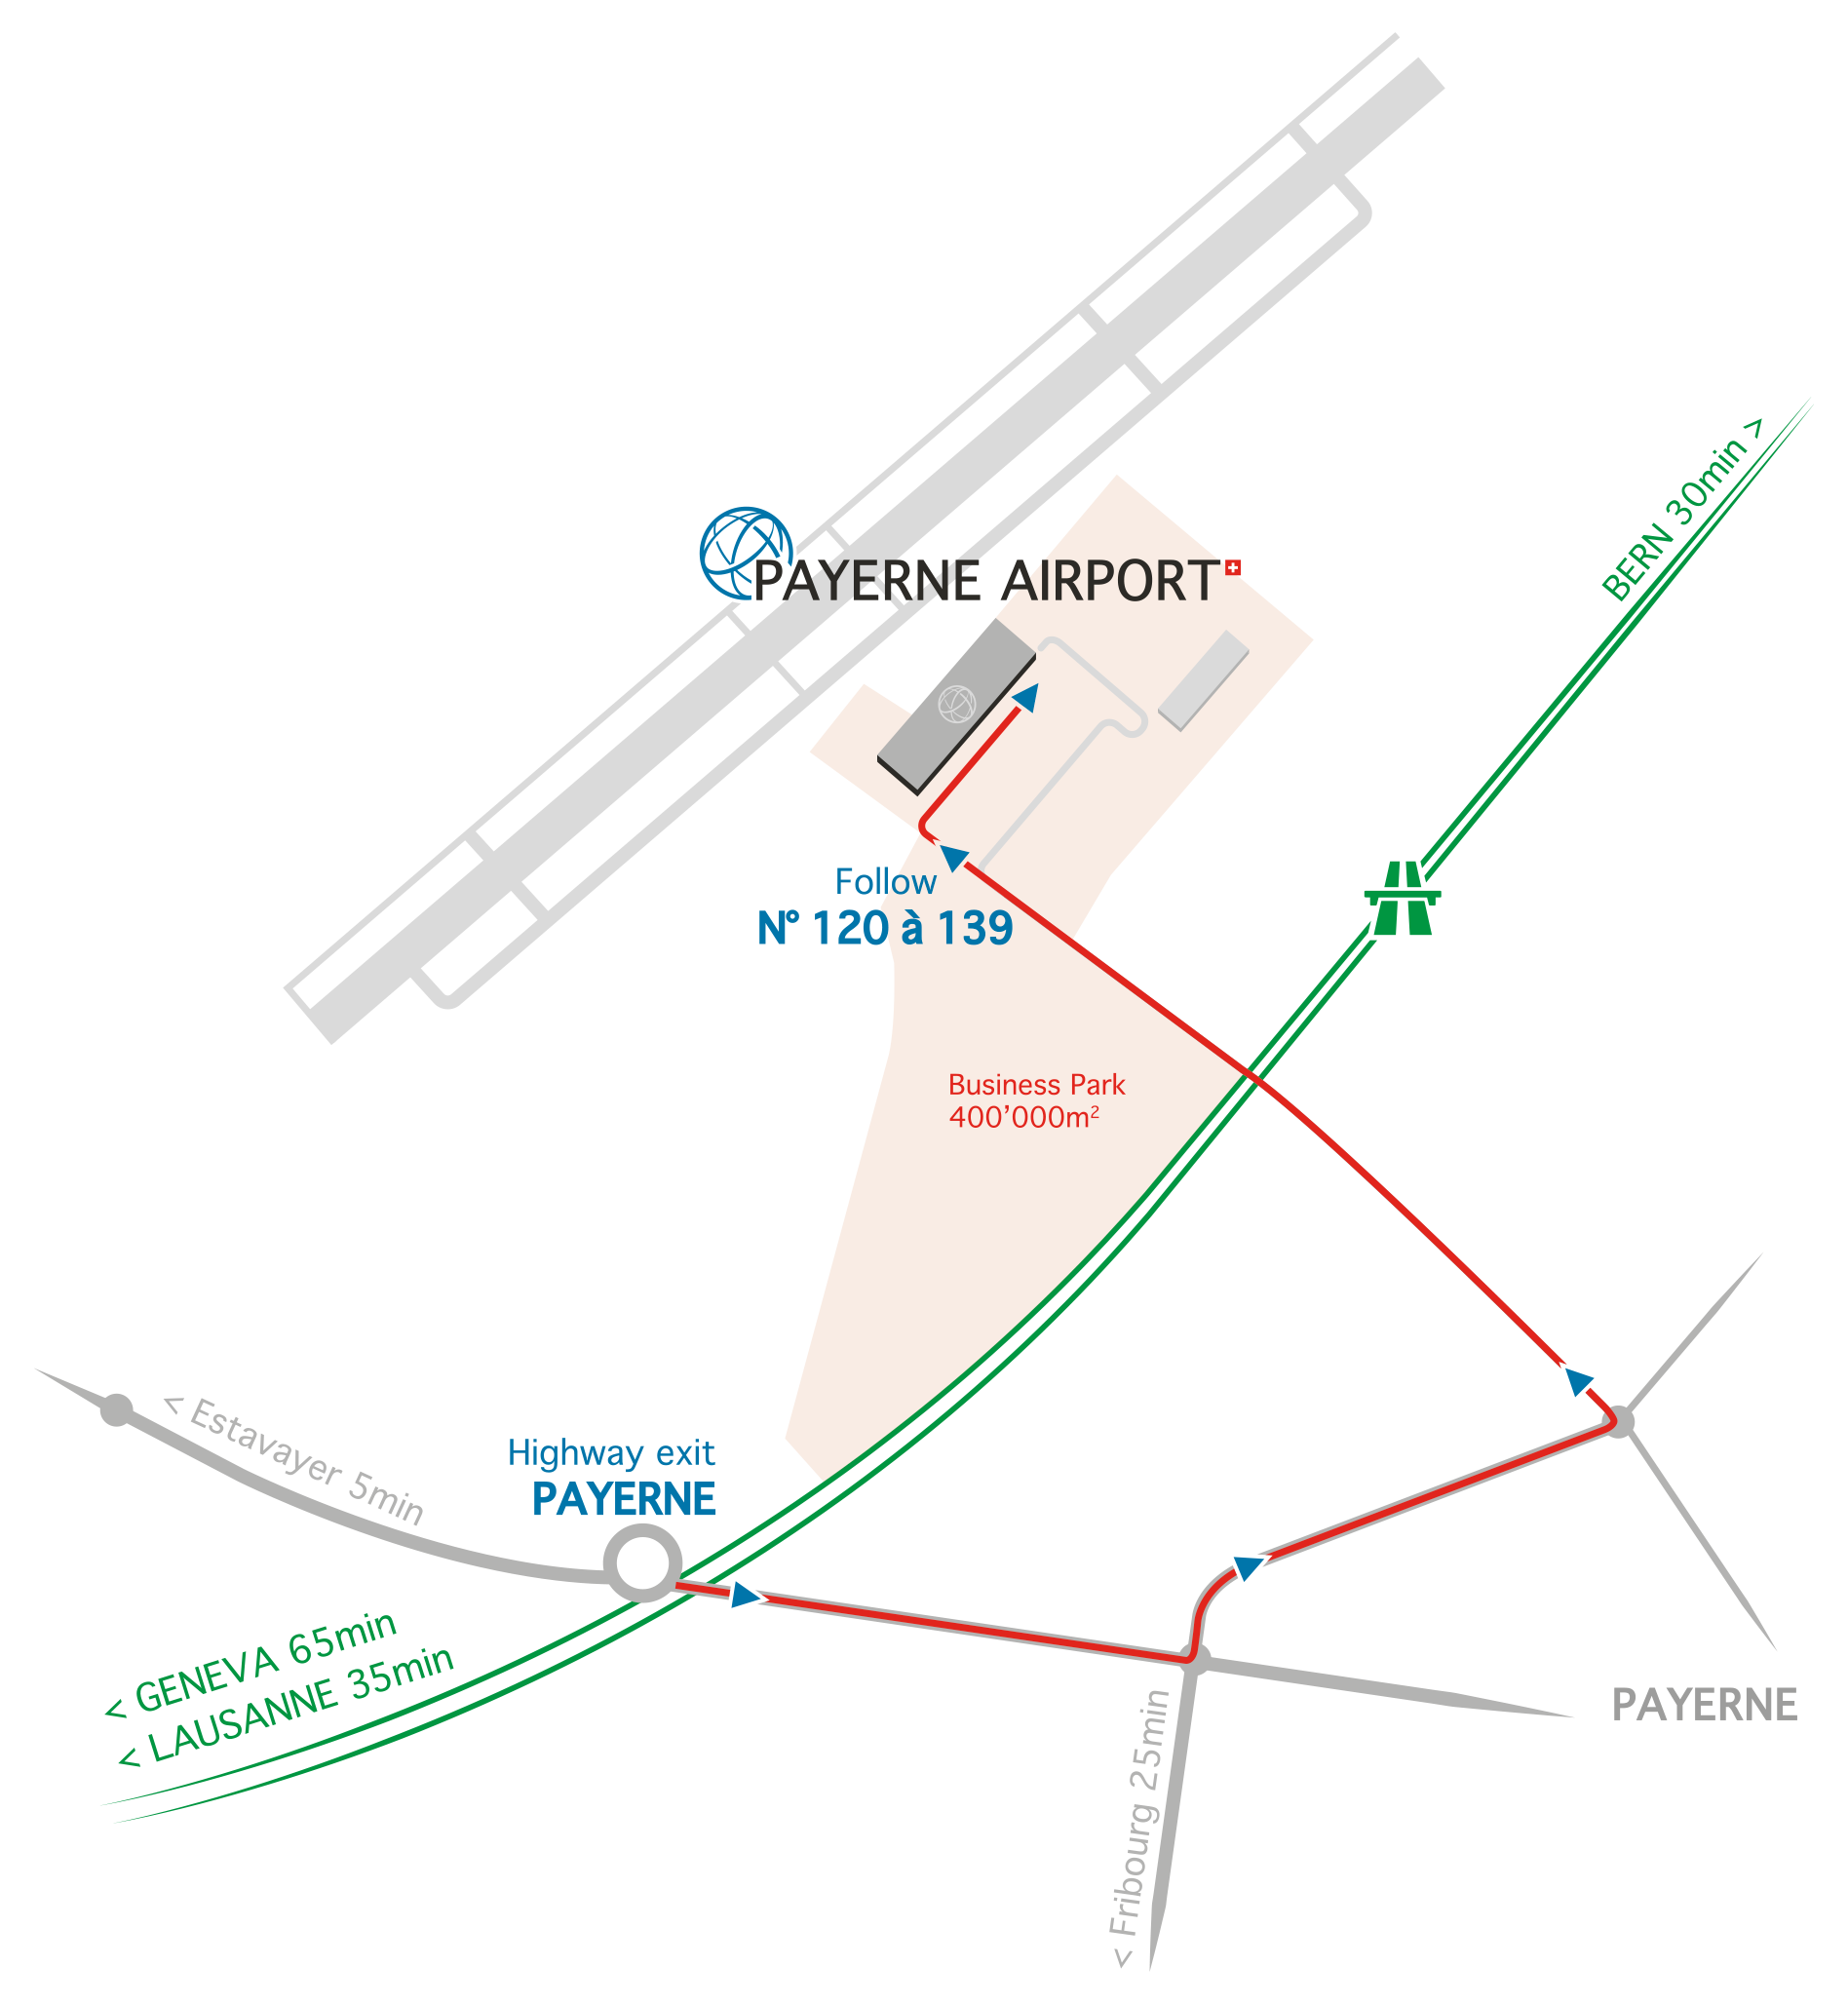 Payerne-Airport-access-map